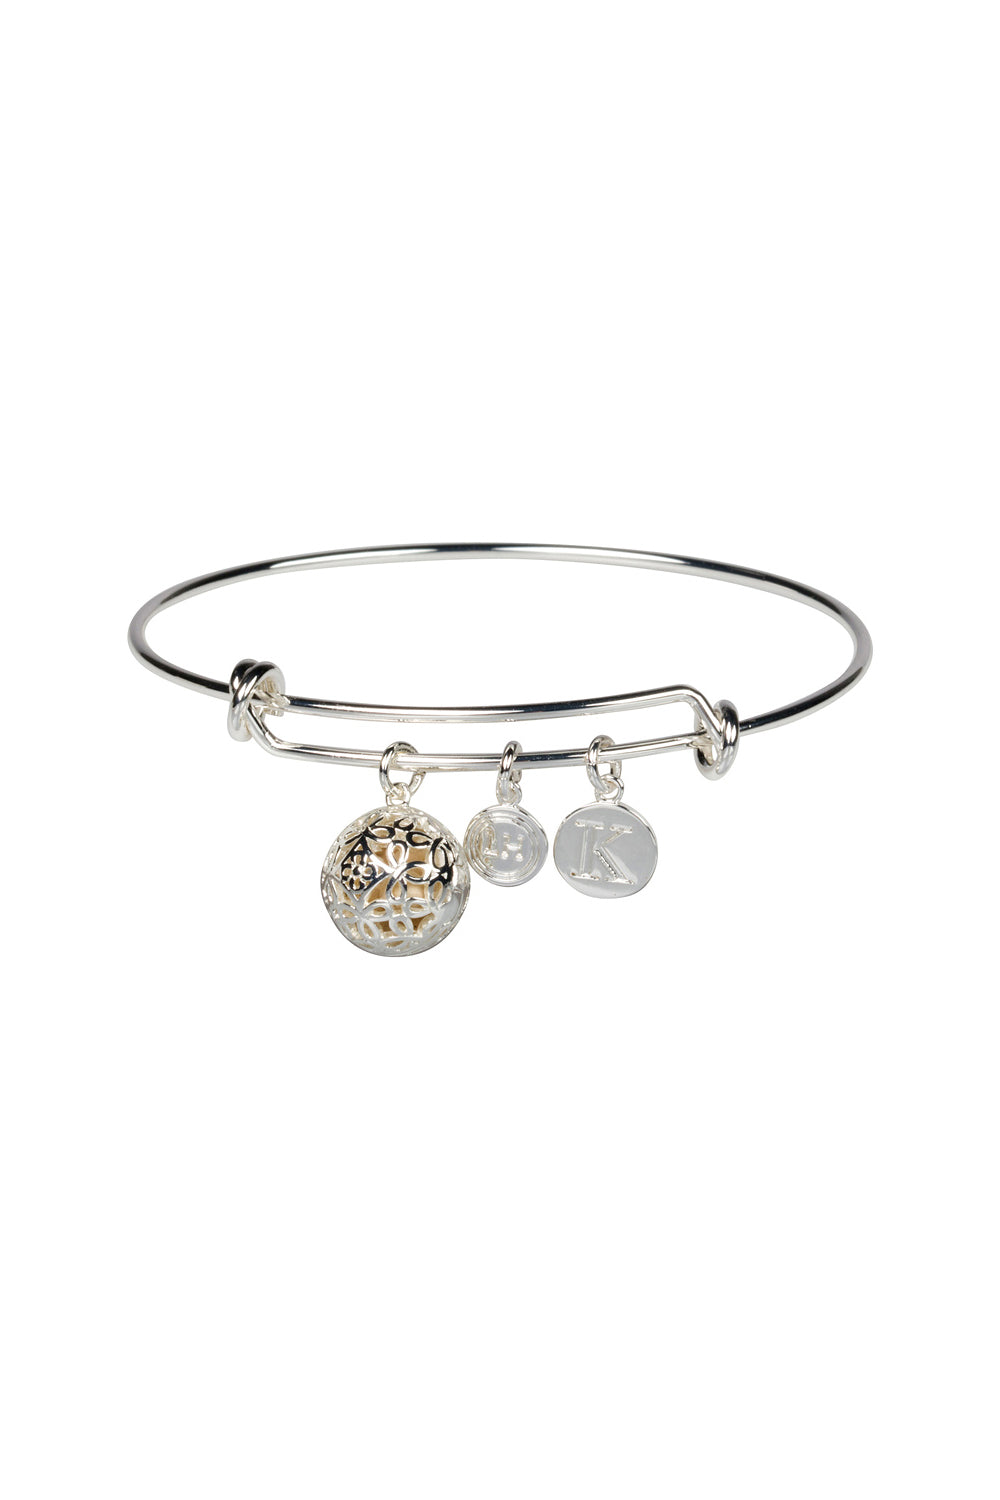 """K"" Initial Fragrance Bangle with Silver Tone Charm"